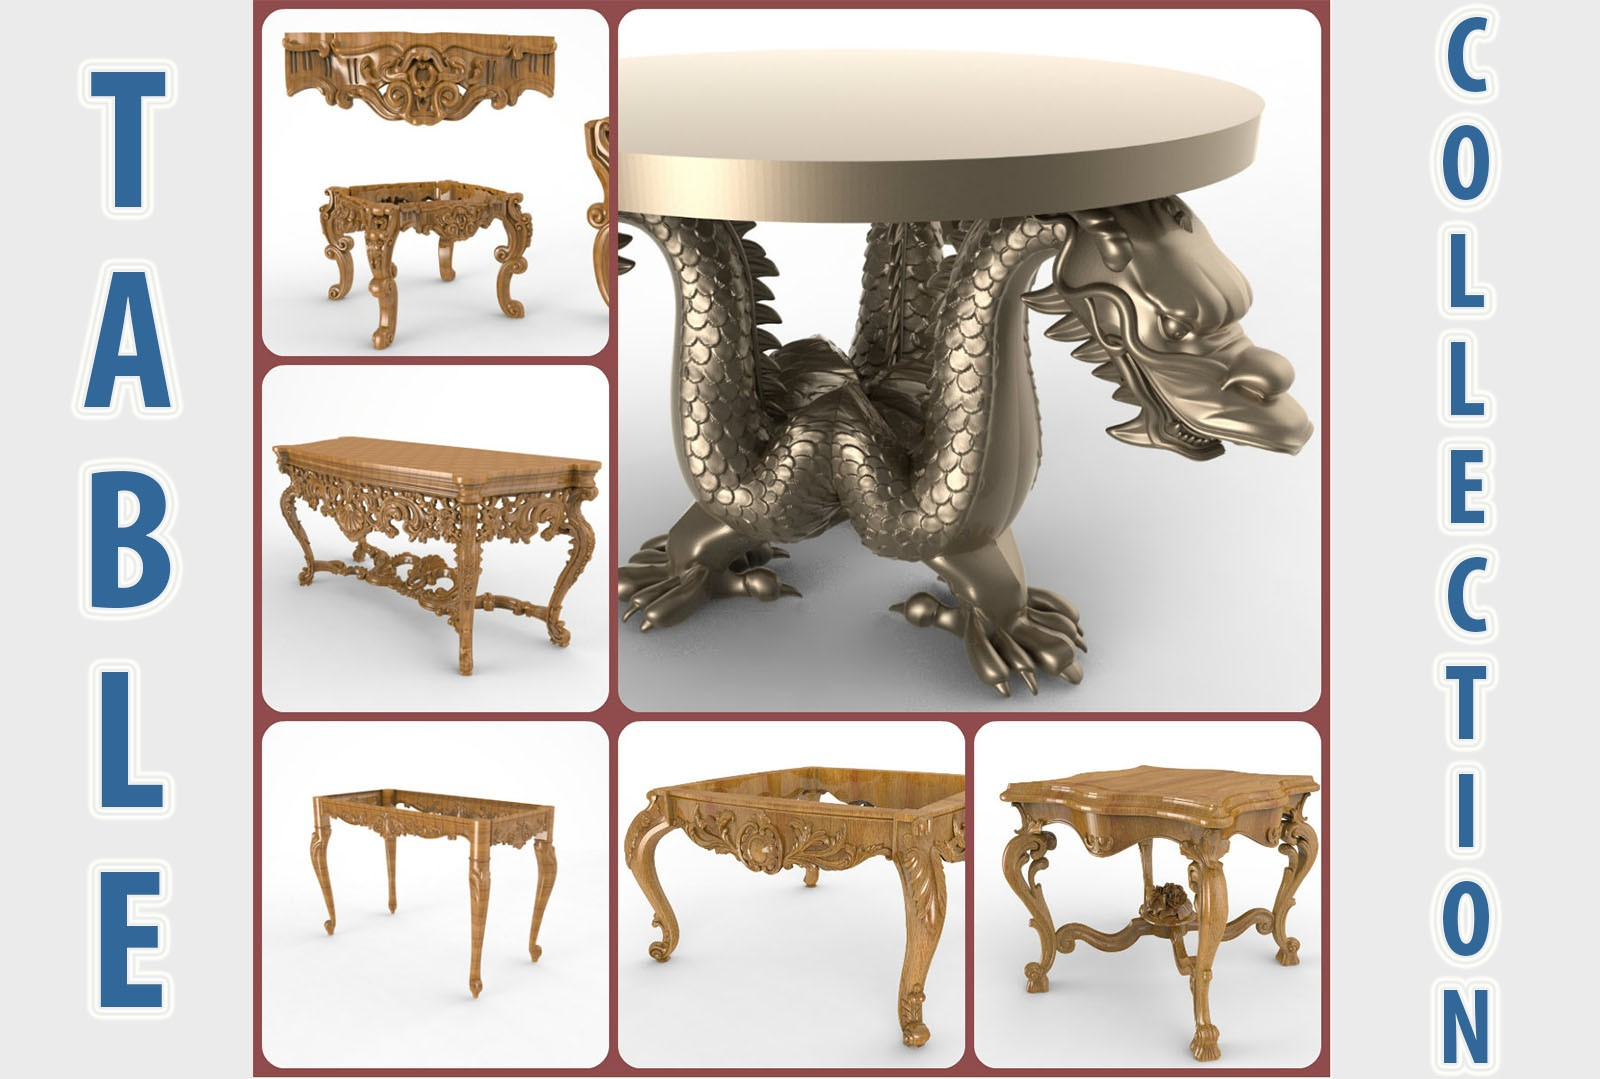 CNC G015 6PC Table Collection 3D STL Model